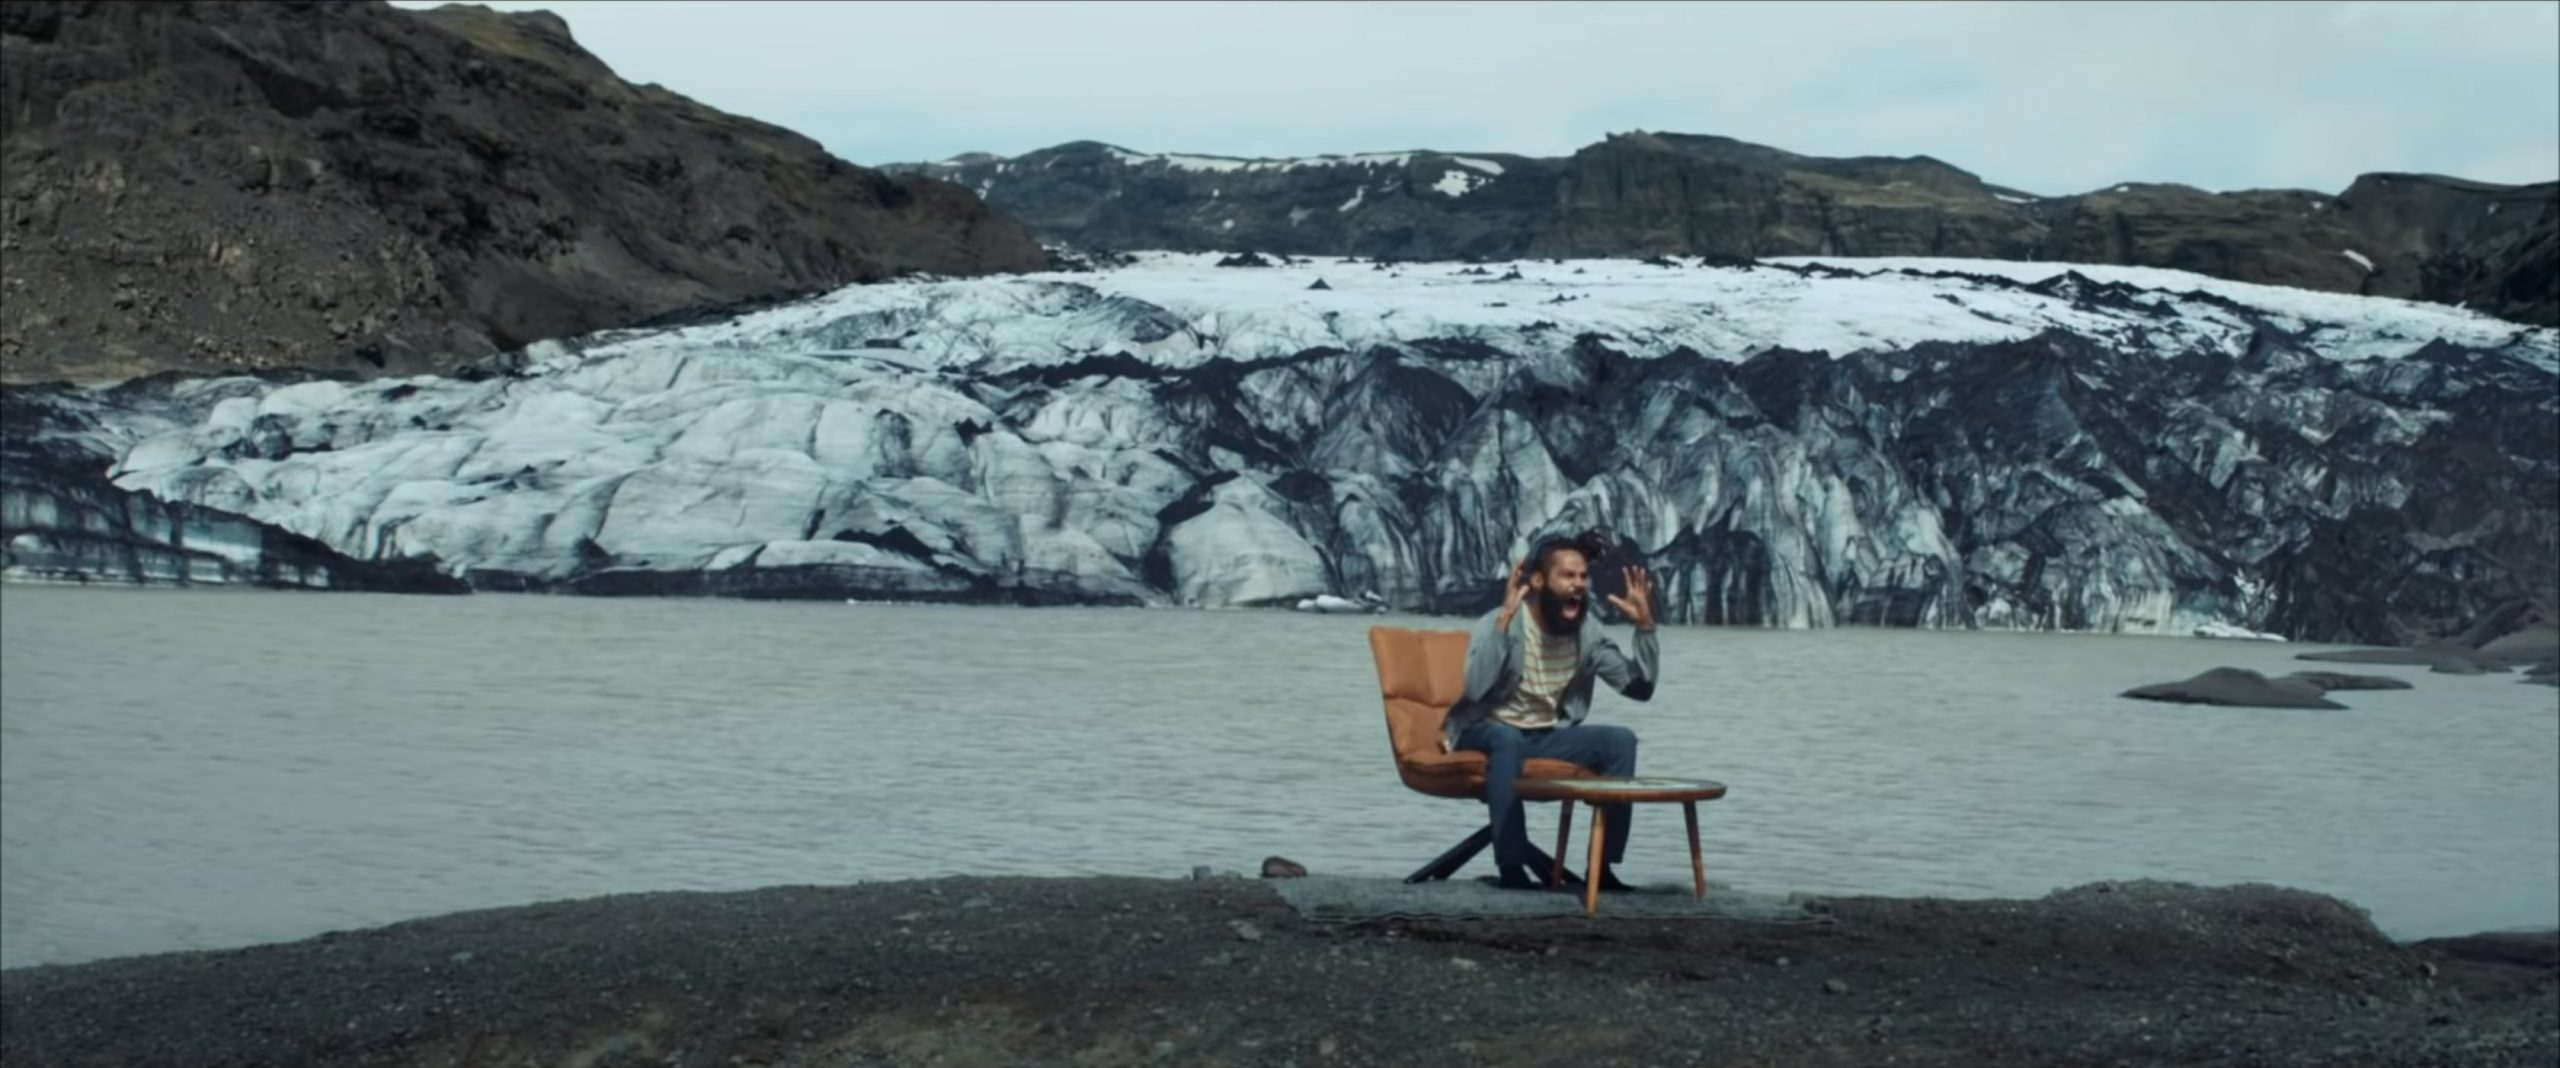 News: Iceland's Let It Out tourism campaign broadcasts your scream across its countryside